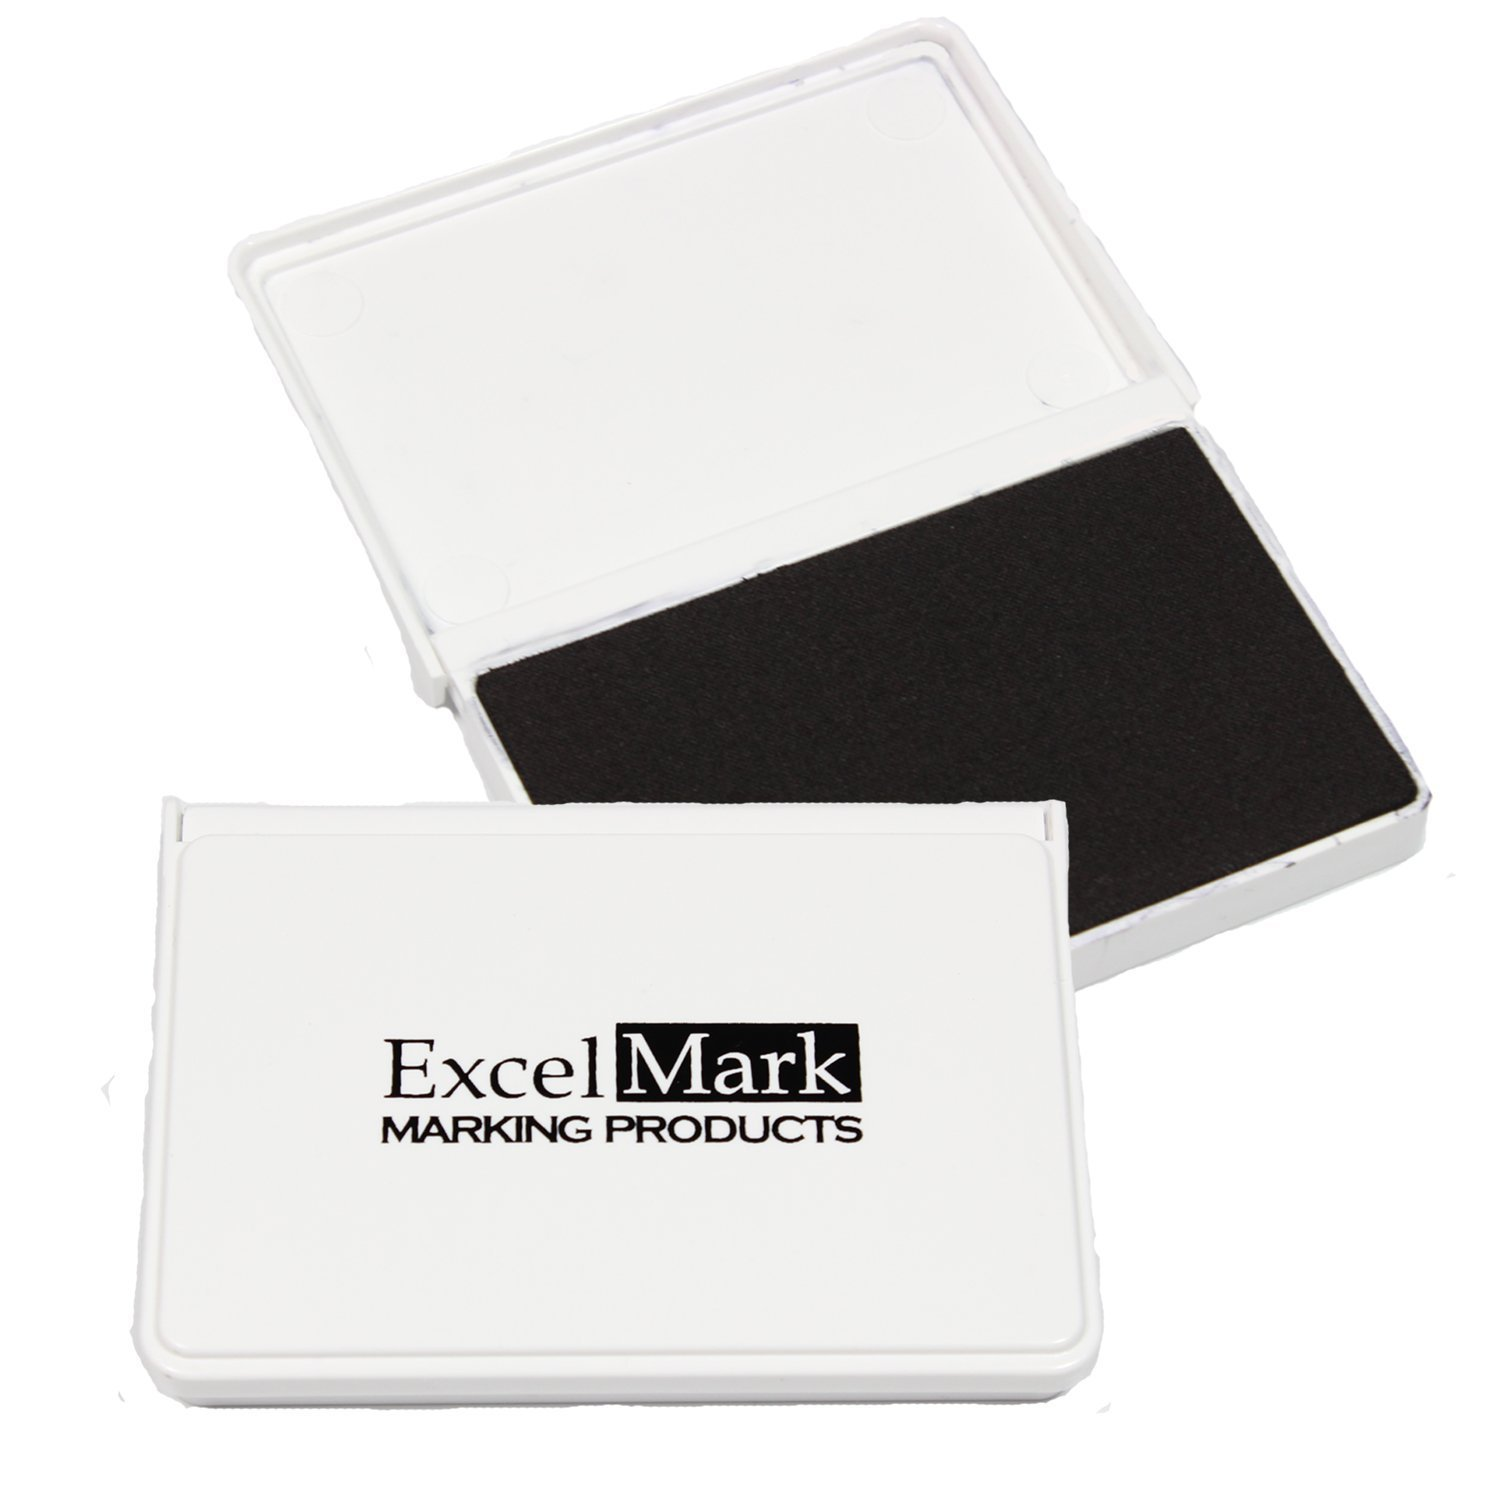 ExcelMark Ink Pad for Rubber Stamps 2-1/8'' by 3-1/4'' (Black Ink) - 2 Pack